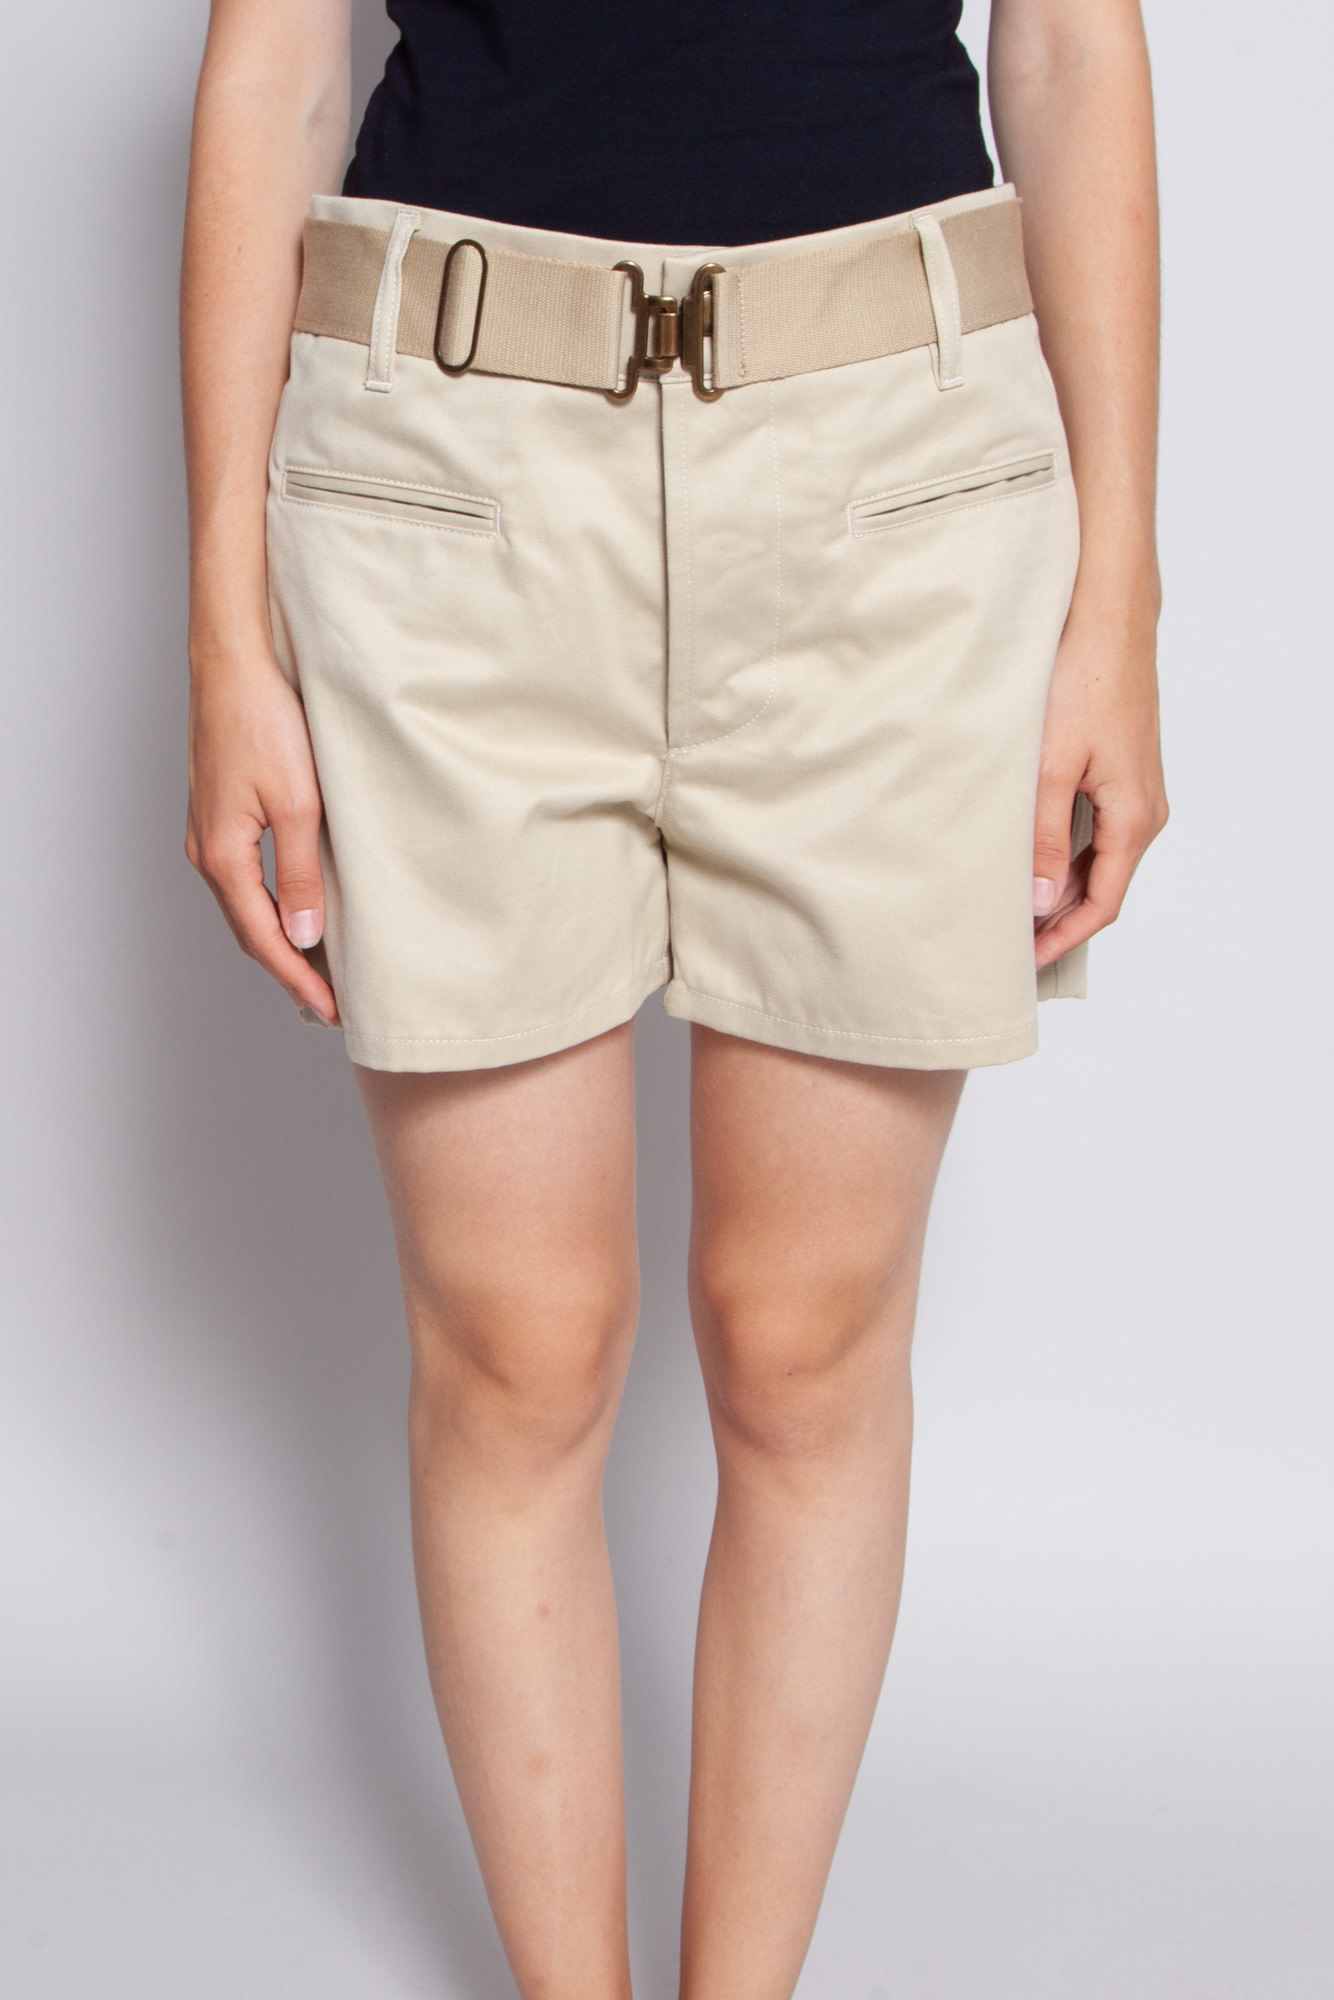 Chloé BEIGE COTTON SHORTS WITH BELT - NEW WITH TAG